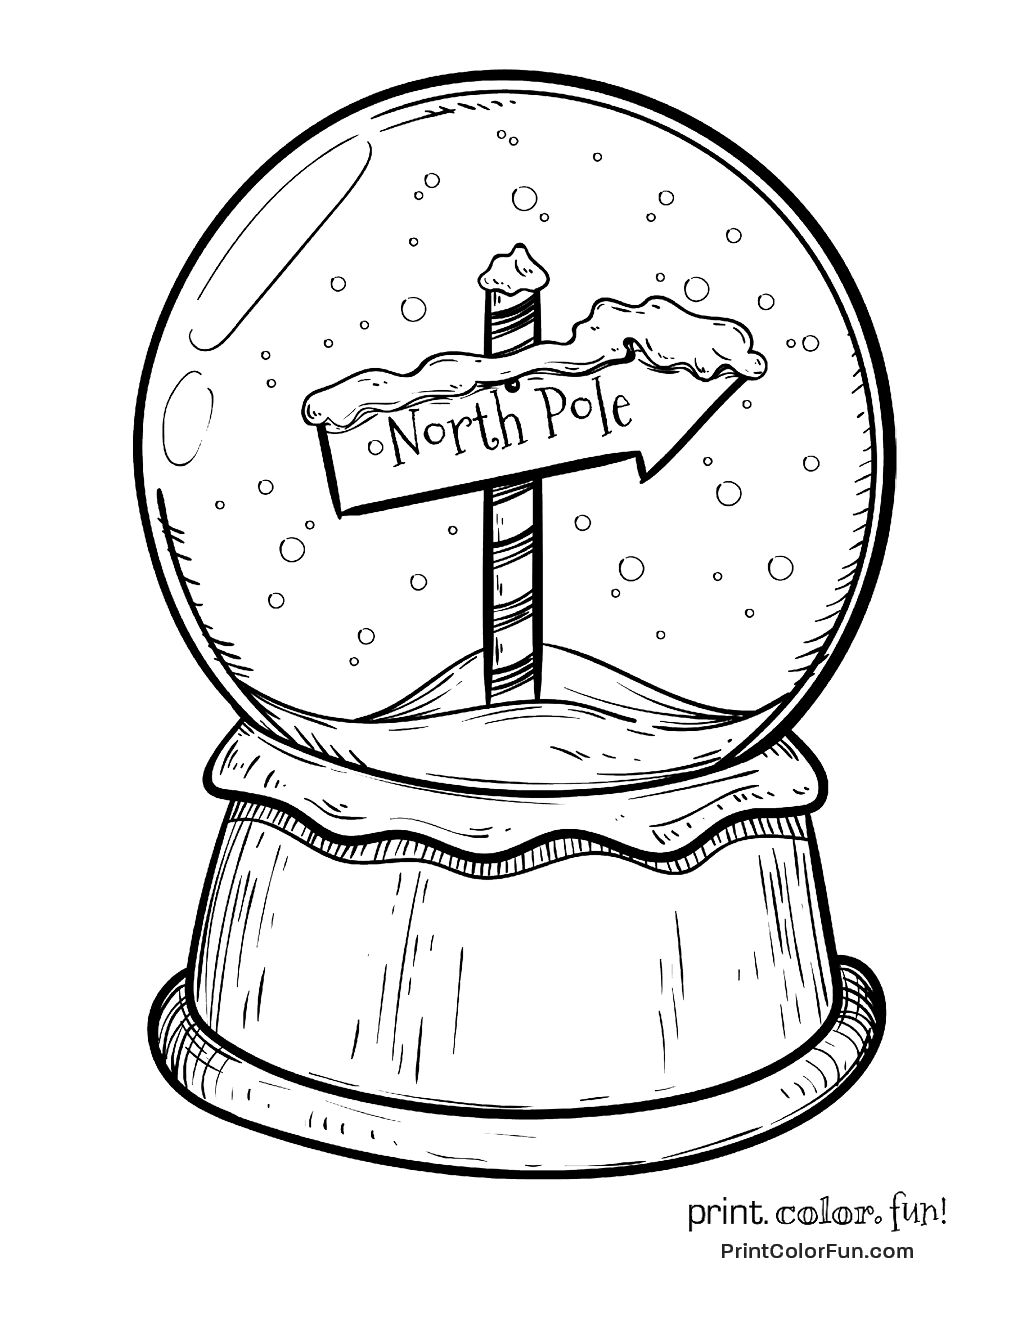 fox snow globe coloring pages - photo#11